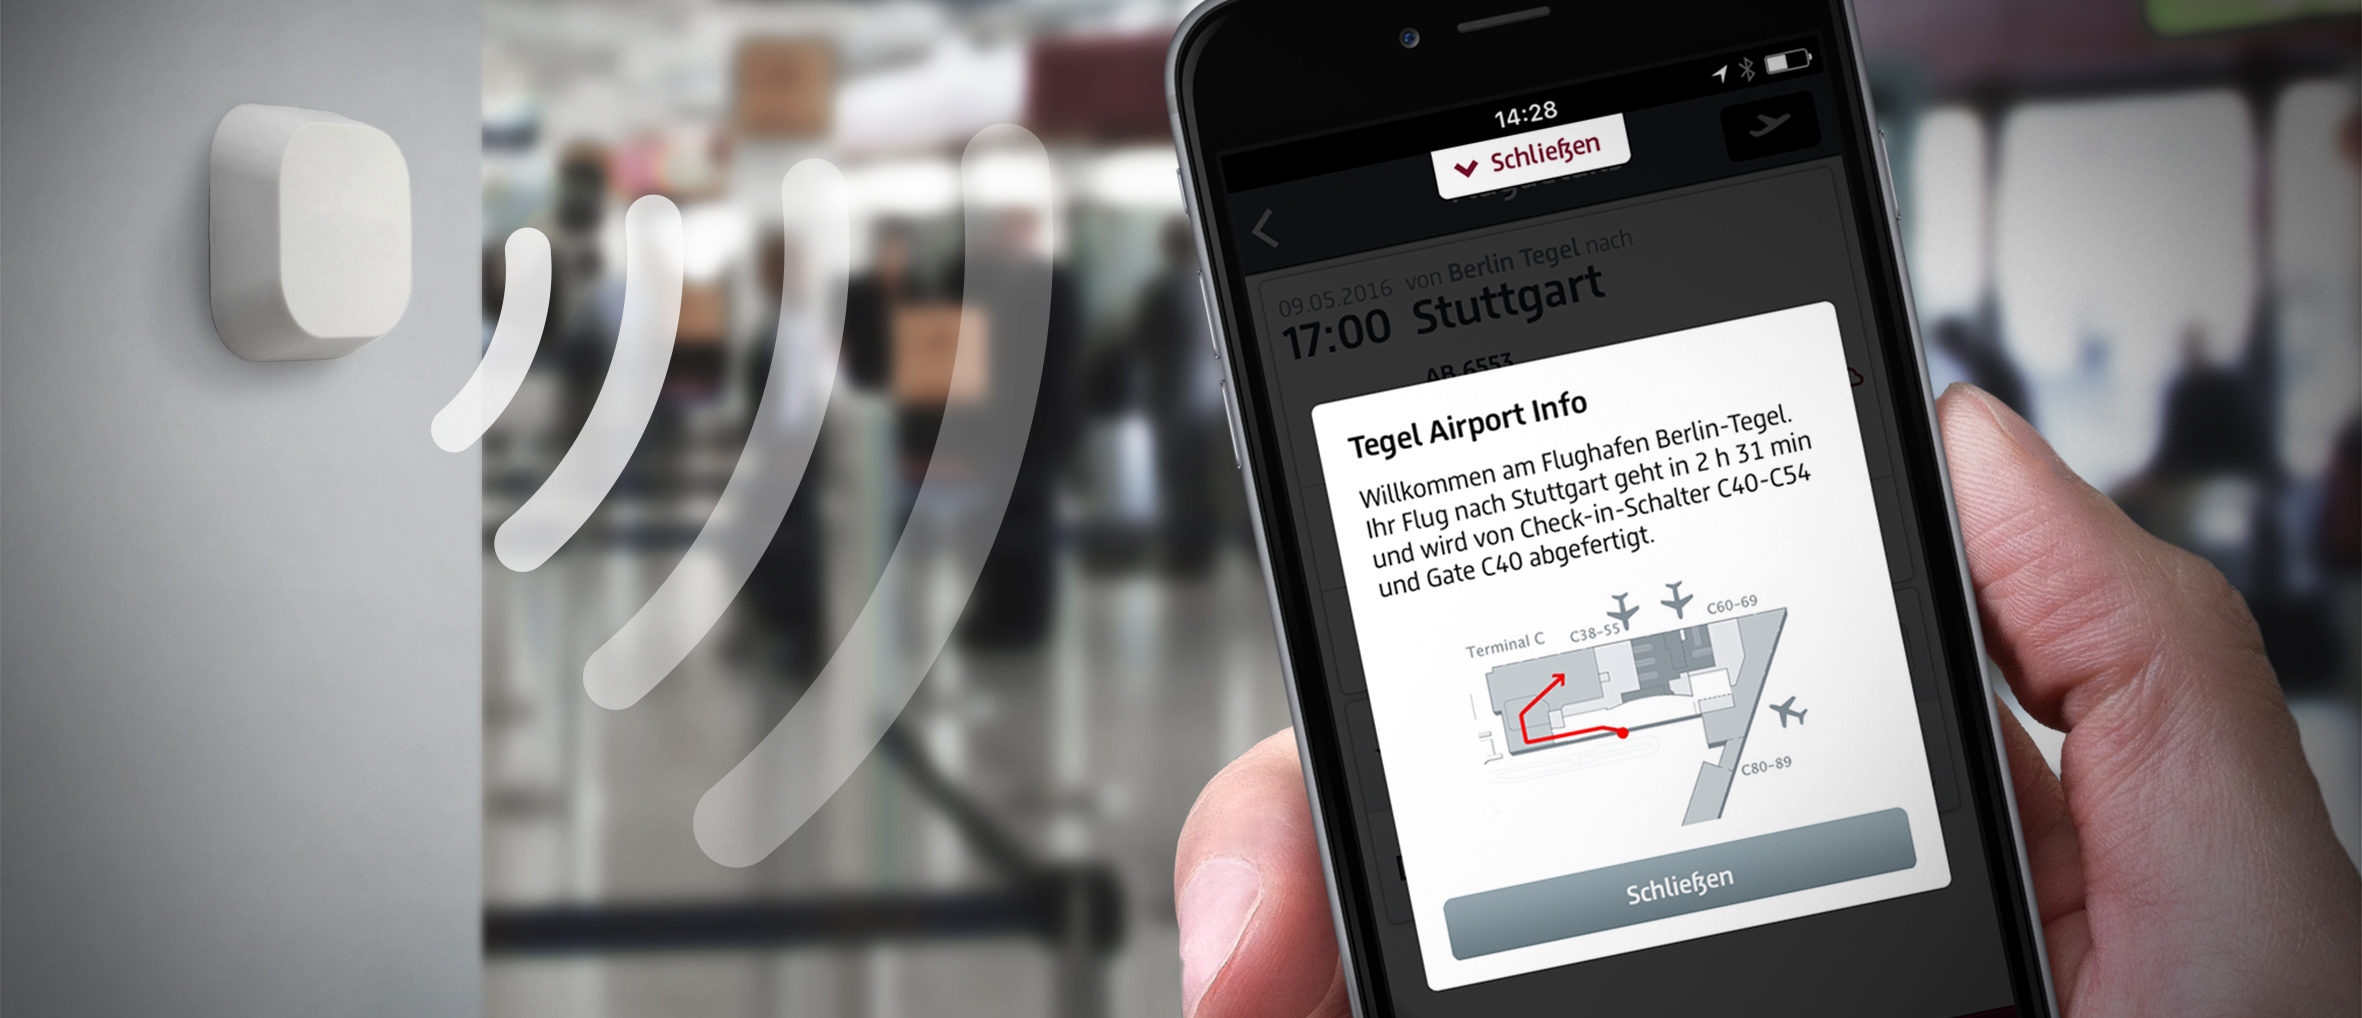 Relaxed holiday start: travelling made easy with the Berlin Airport App